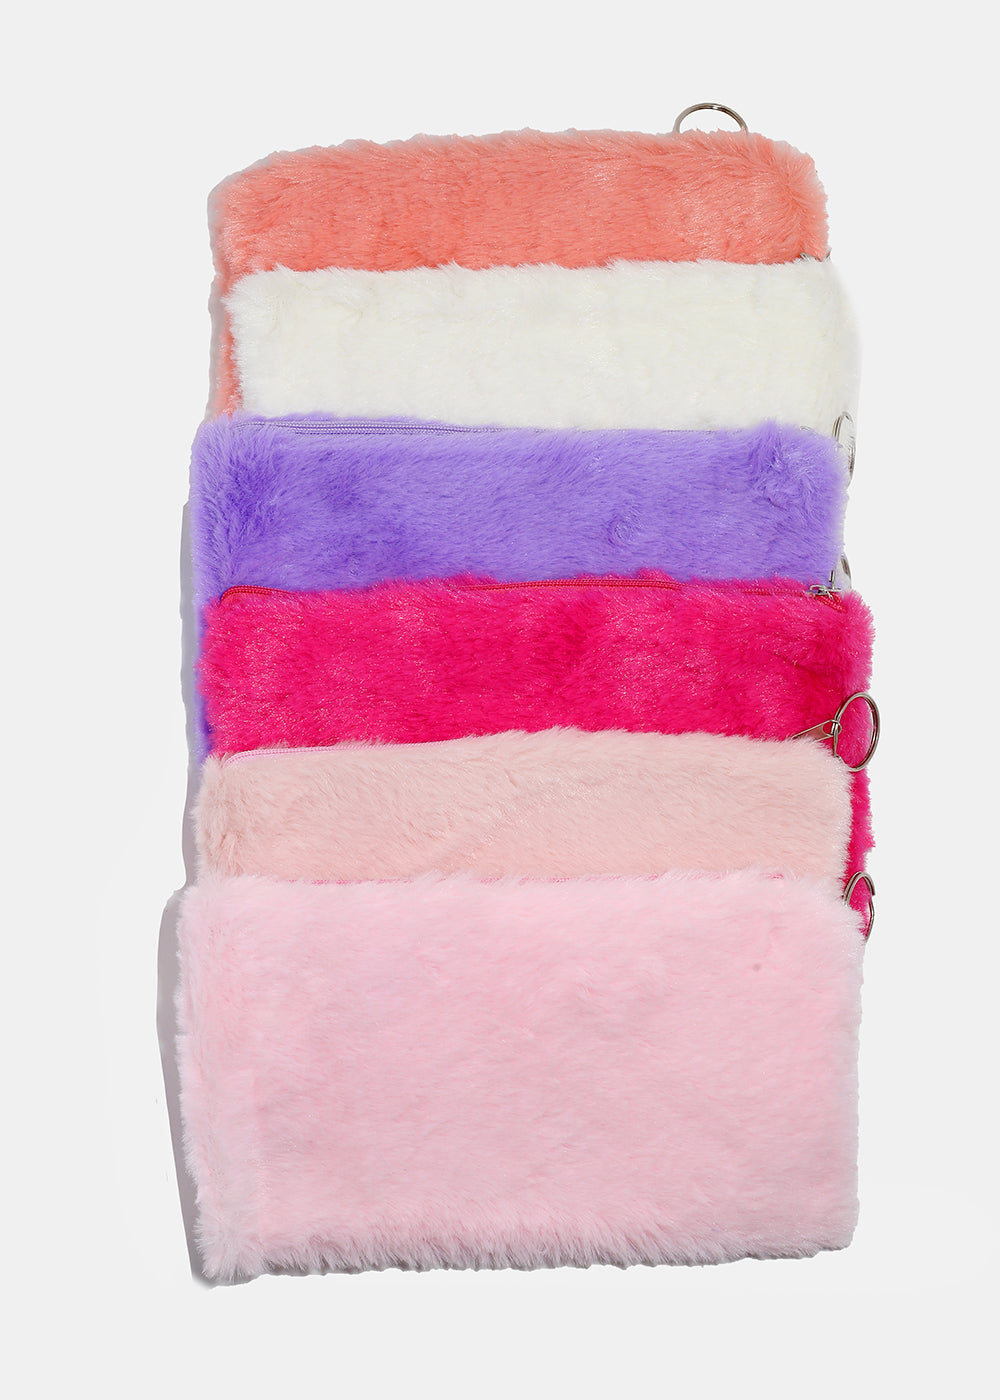 Faux Fur Zippered Pouch